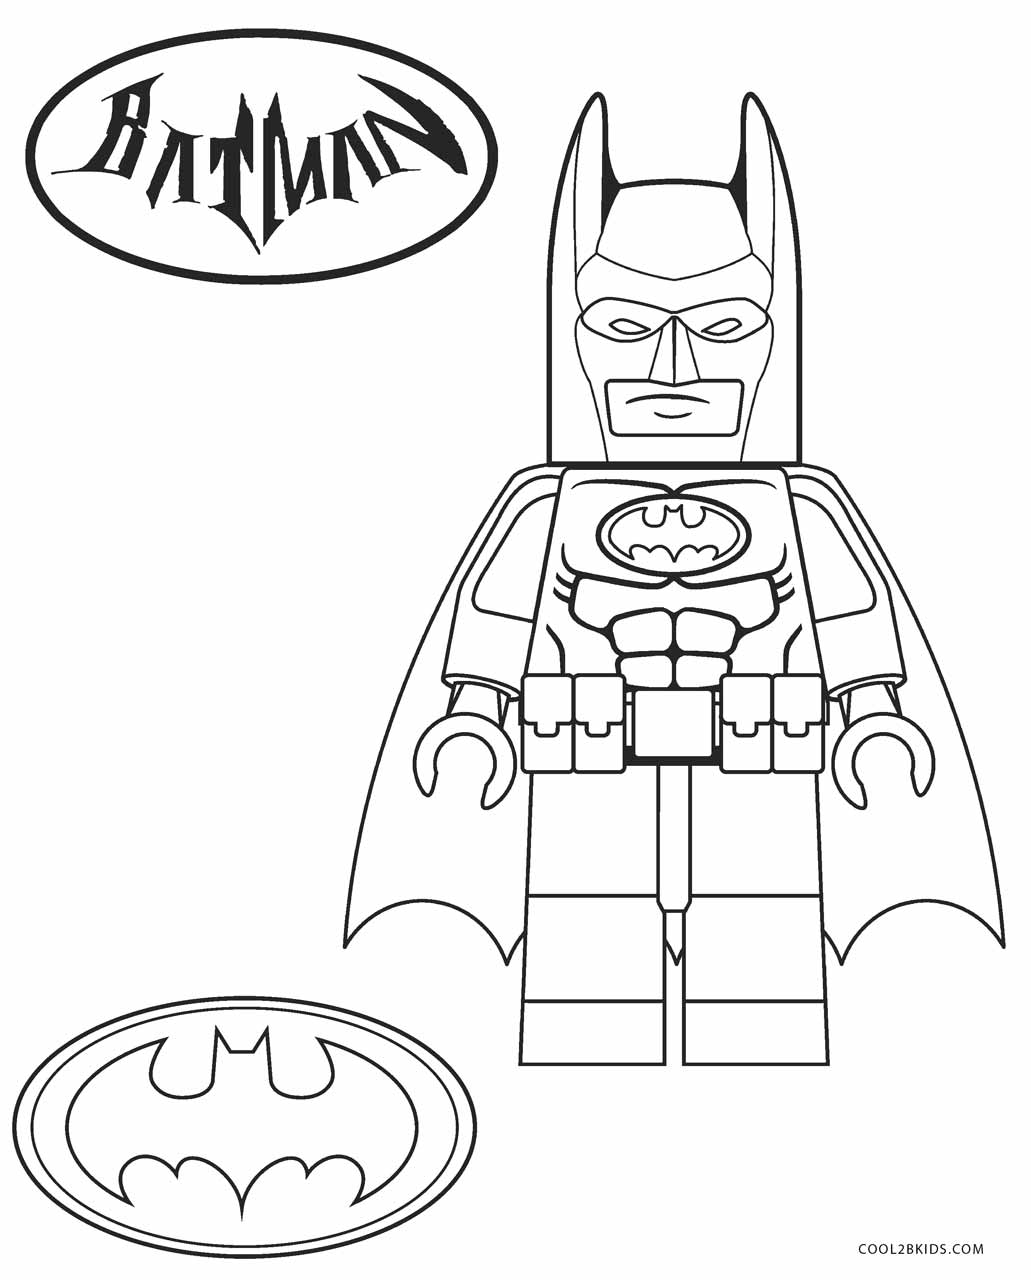 lego coloring pages printable free printable lego city coloring pages for kids clipart lego pages coloring free printable